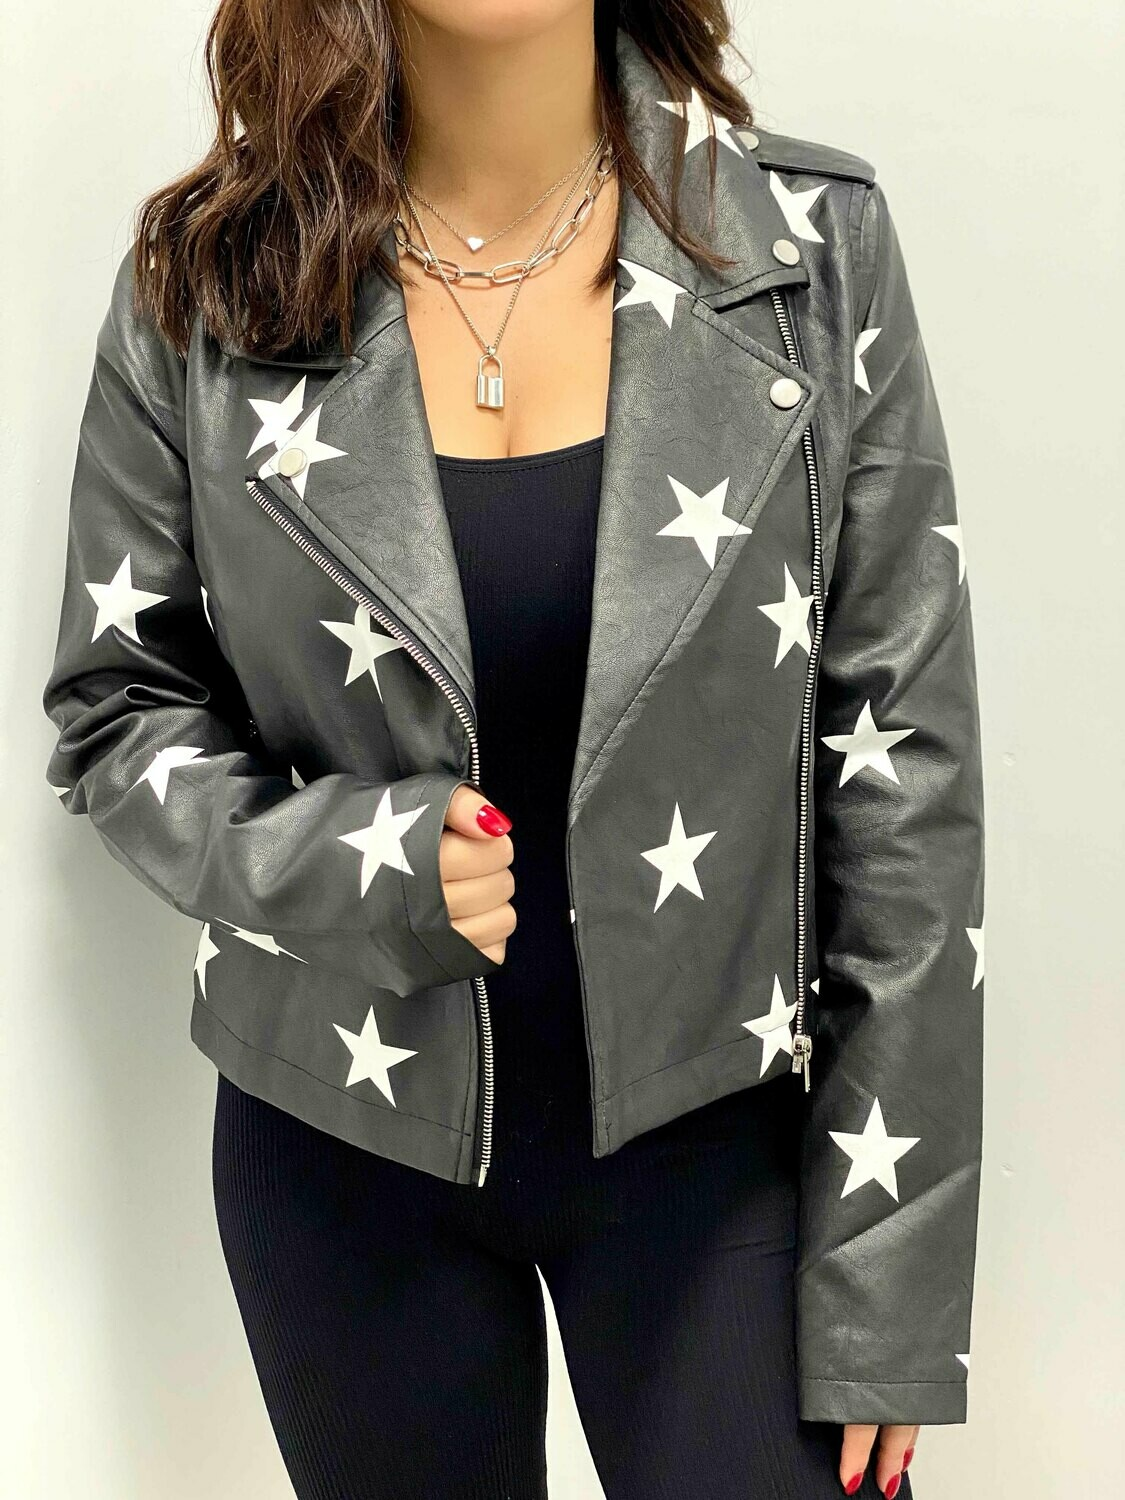 Le Lis Star Leather Biker Jacket